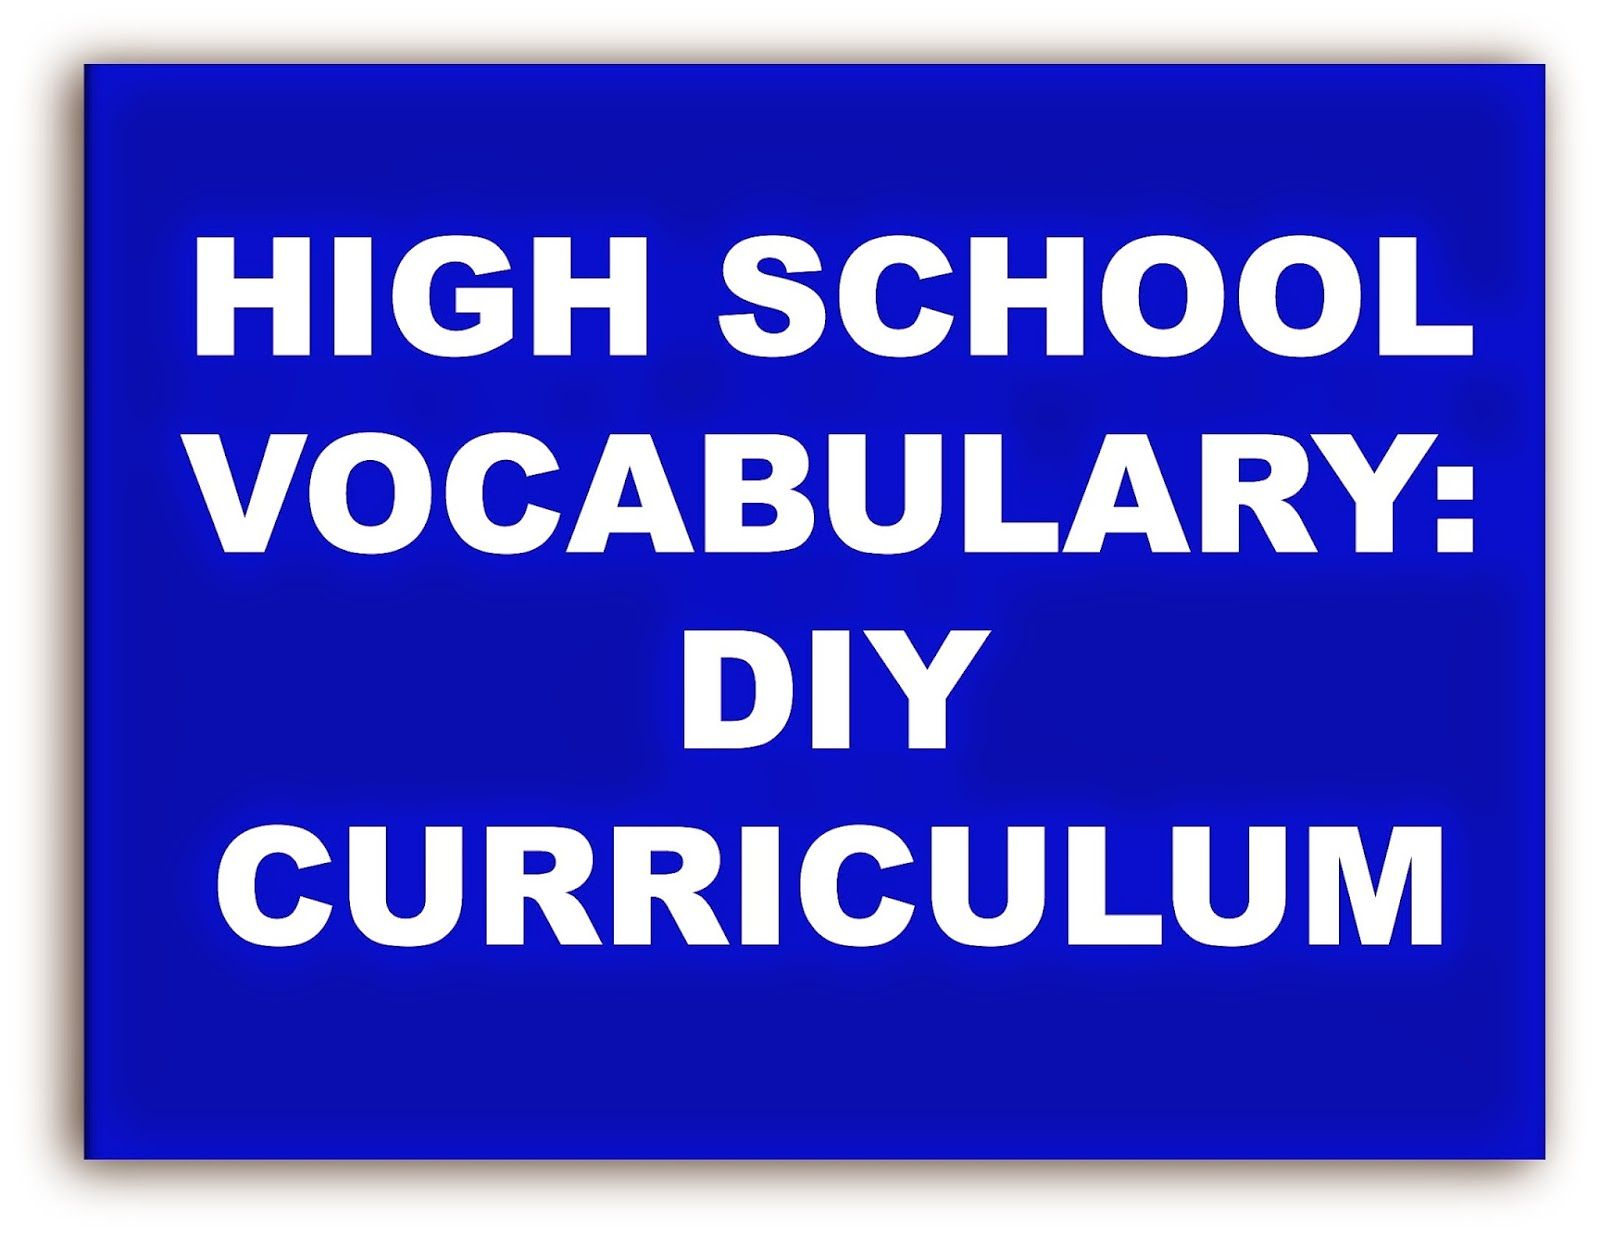 High School Vocabulary Diy Curriculum With Images